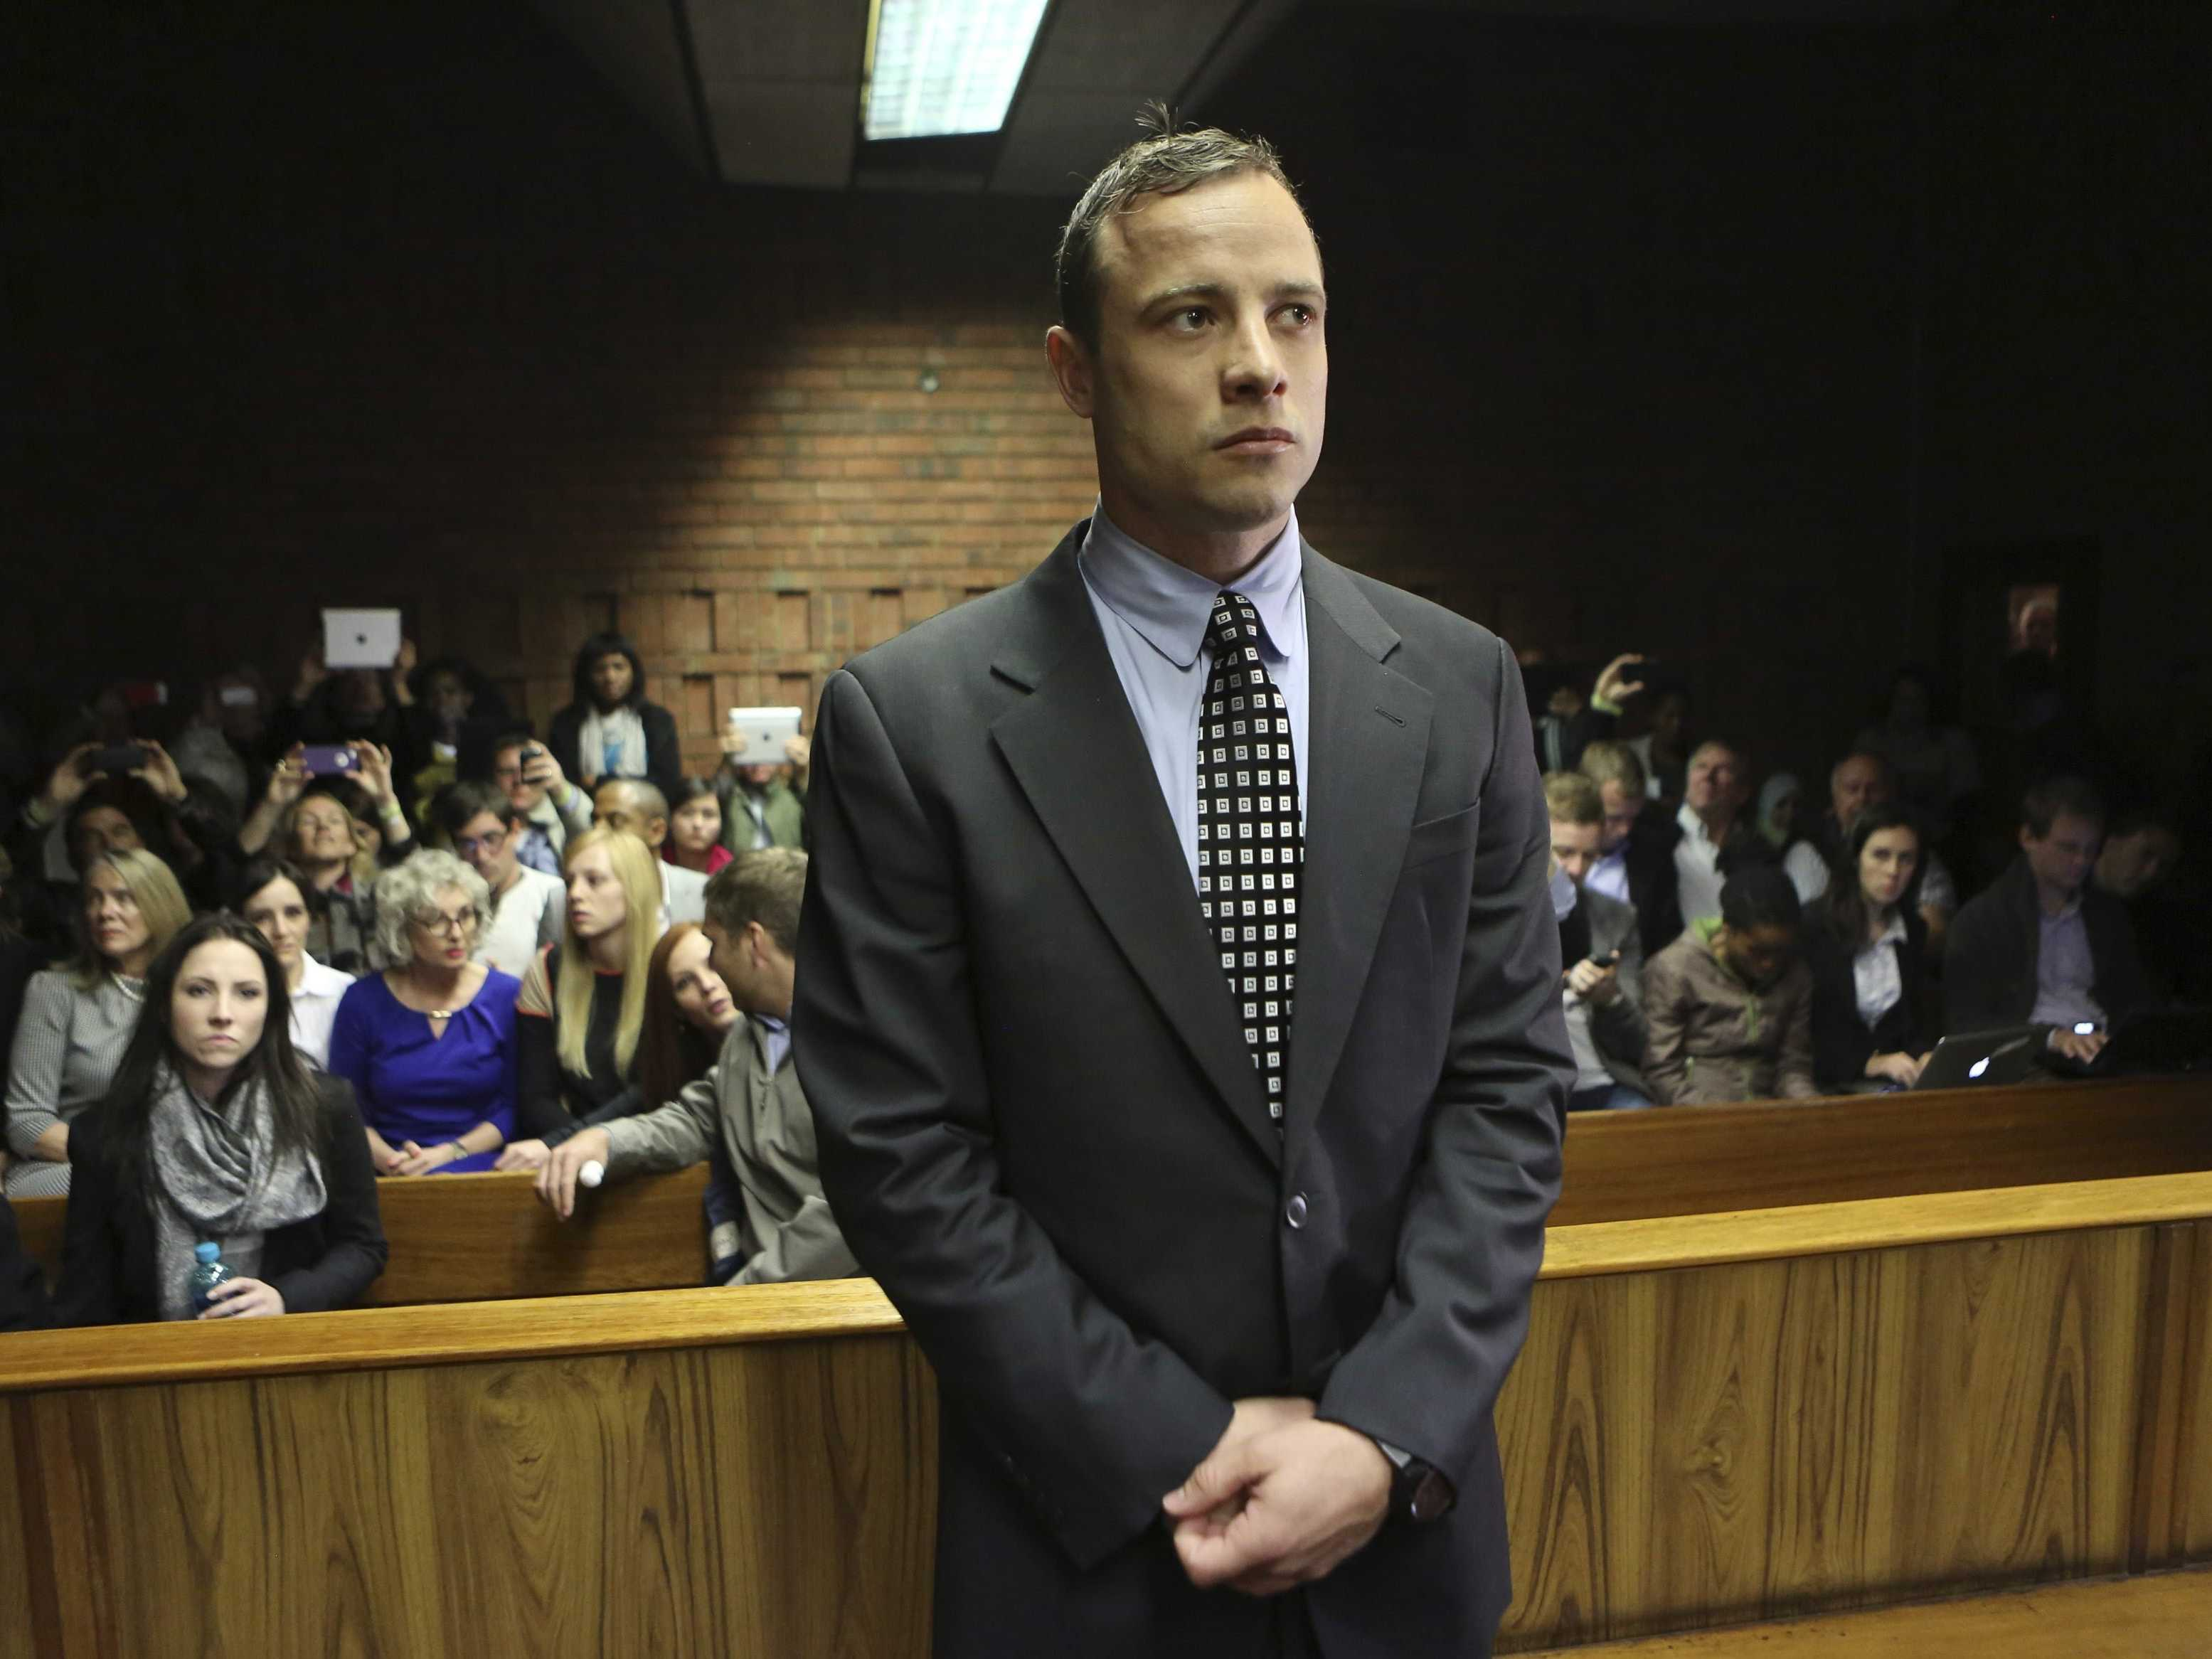 Rachel Barber Had No Idea Of Robertsons Evil Plan further Oscar Pistorius To Remain In Prison Indefinitely Case Under Review Q06532 as well Index likewise Pistorius To Be Released On Parole In August Family Member furthermore Shrien Dewani DID Plot Wife Annis Murder Says South African Hitman. on oscar pistorius parole